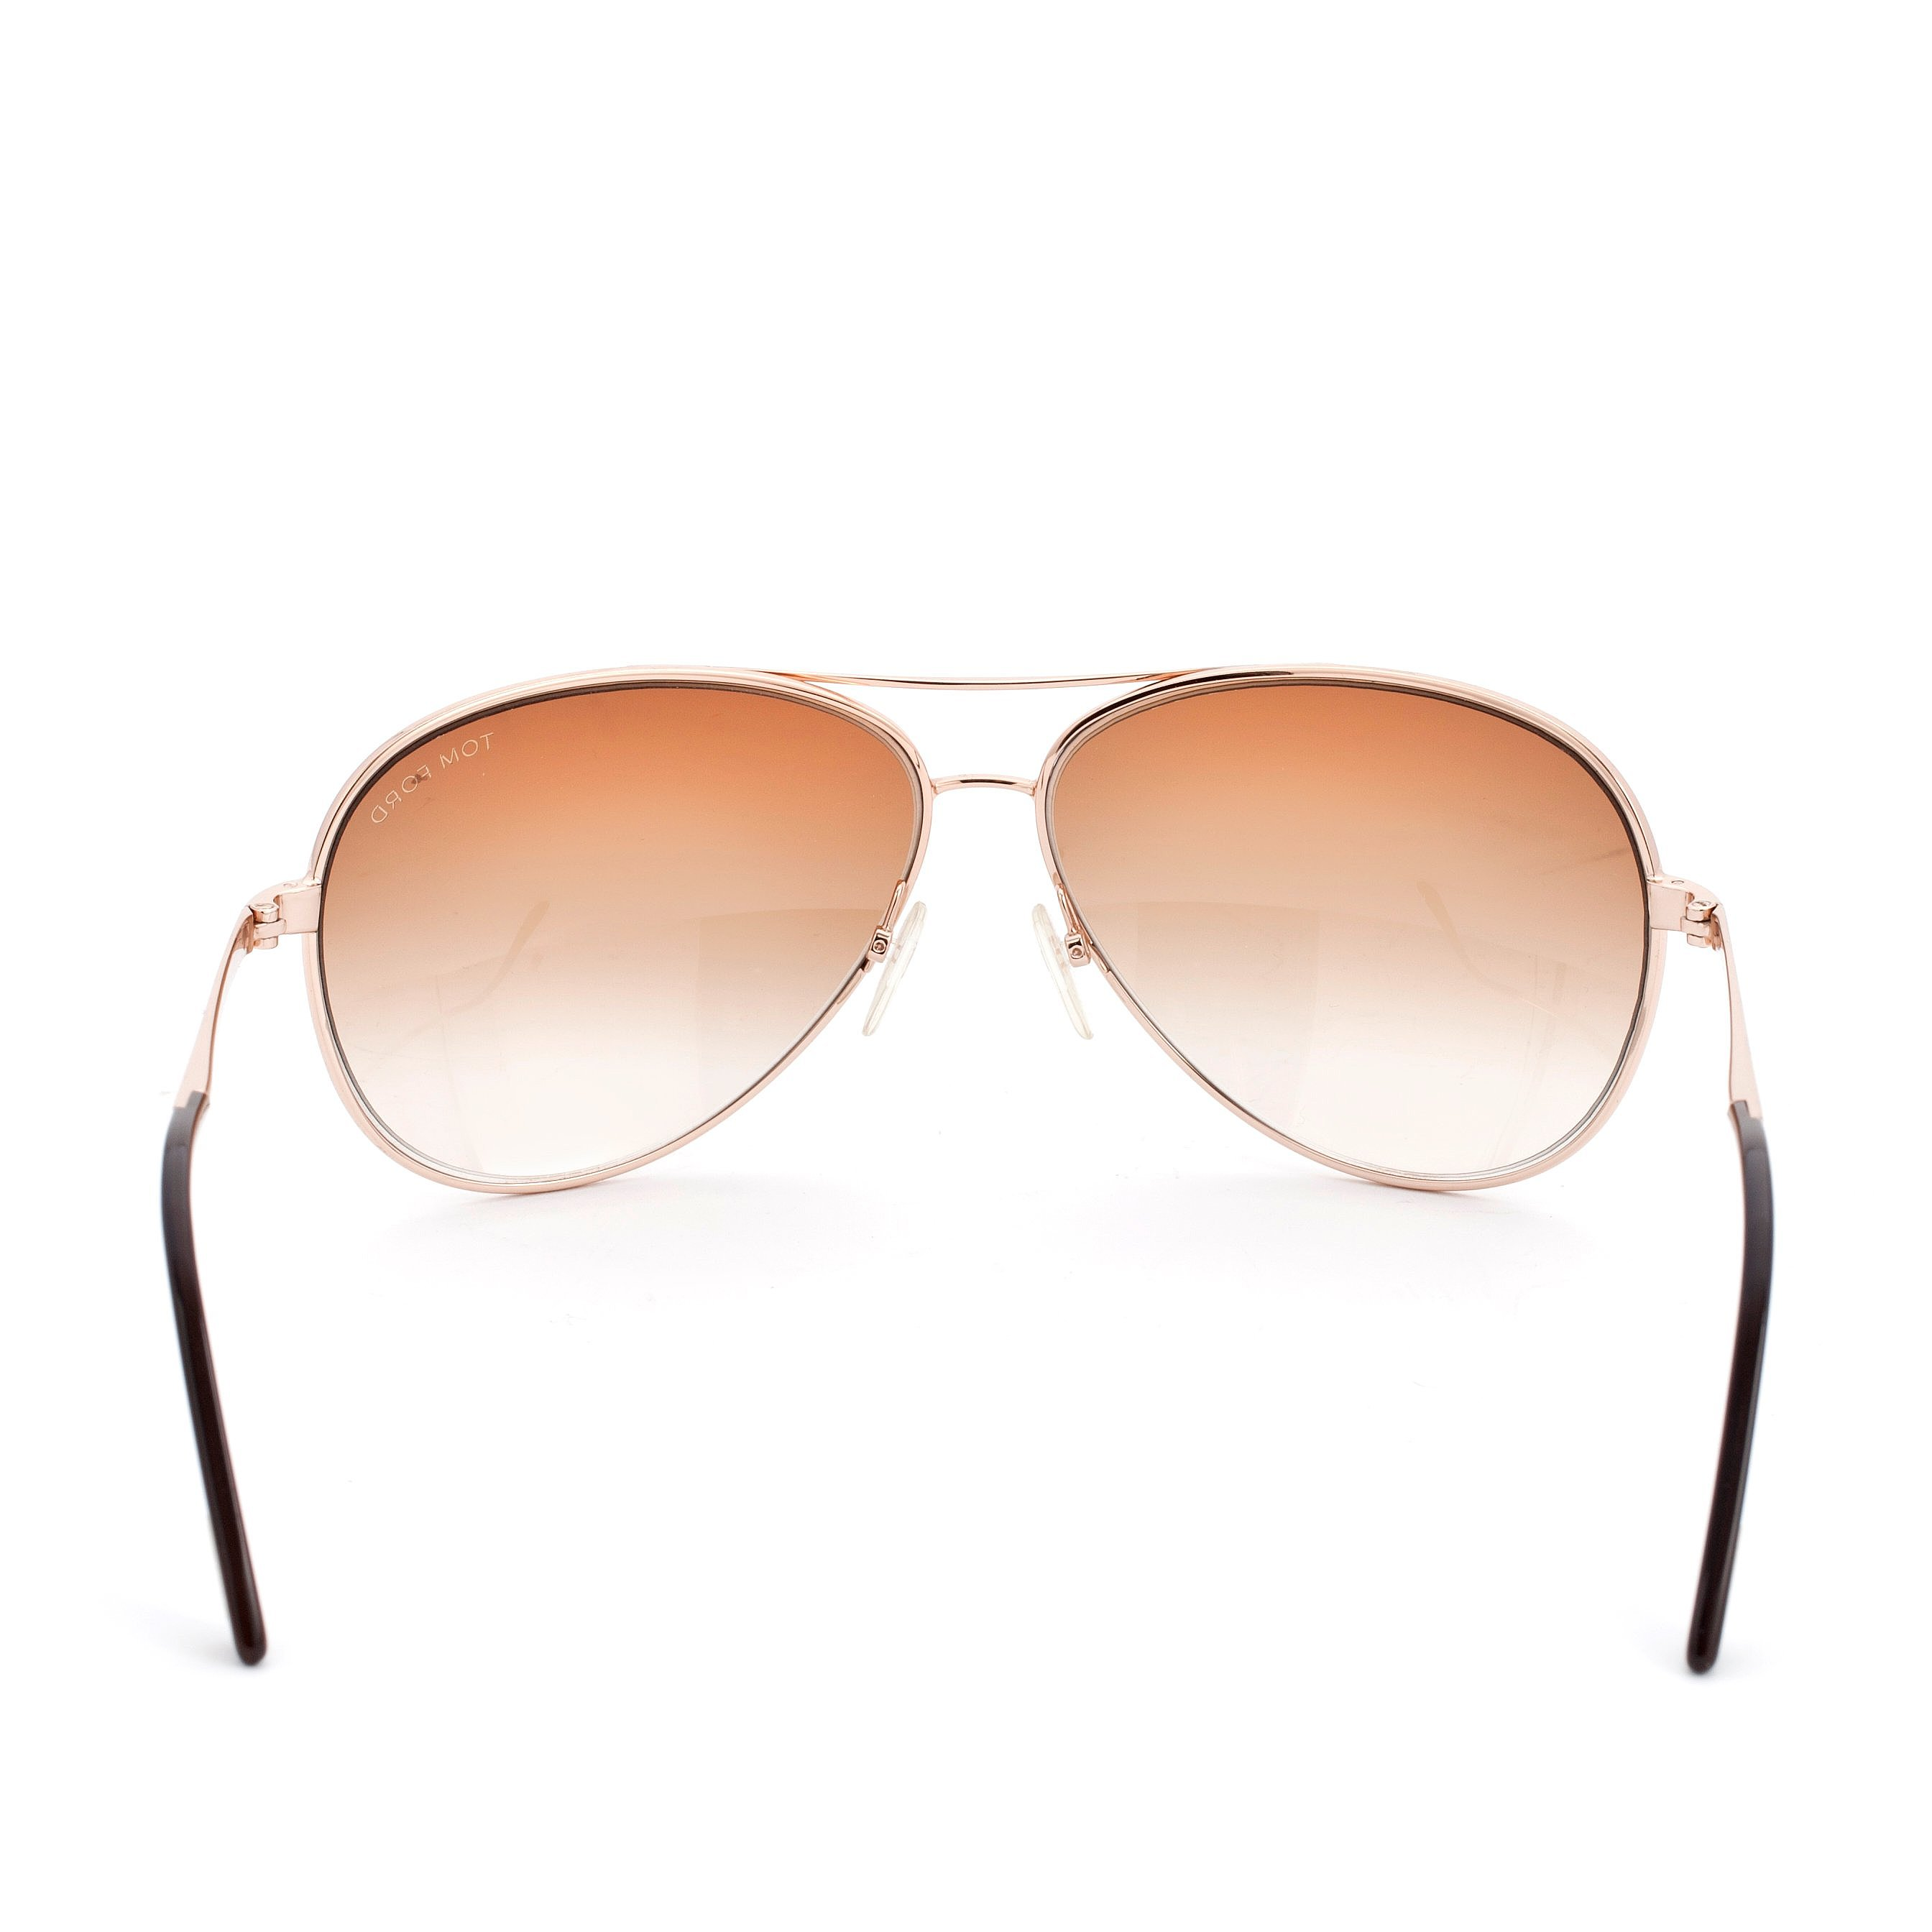 3cc0a305db1d TOM FORD, a pair of gold colored sunglasses. - Bukowskis